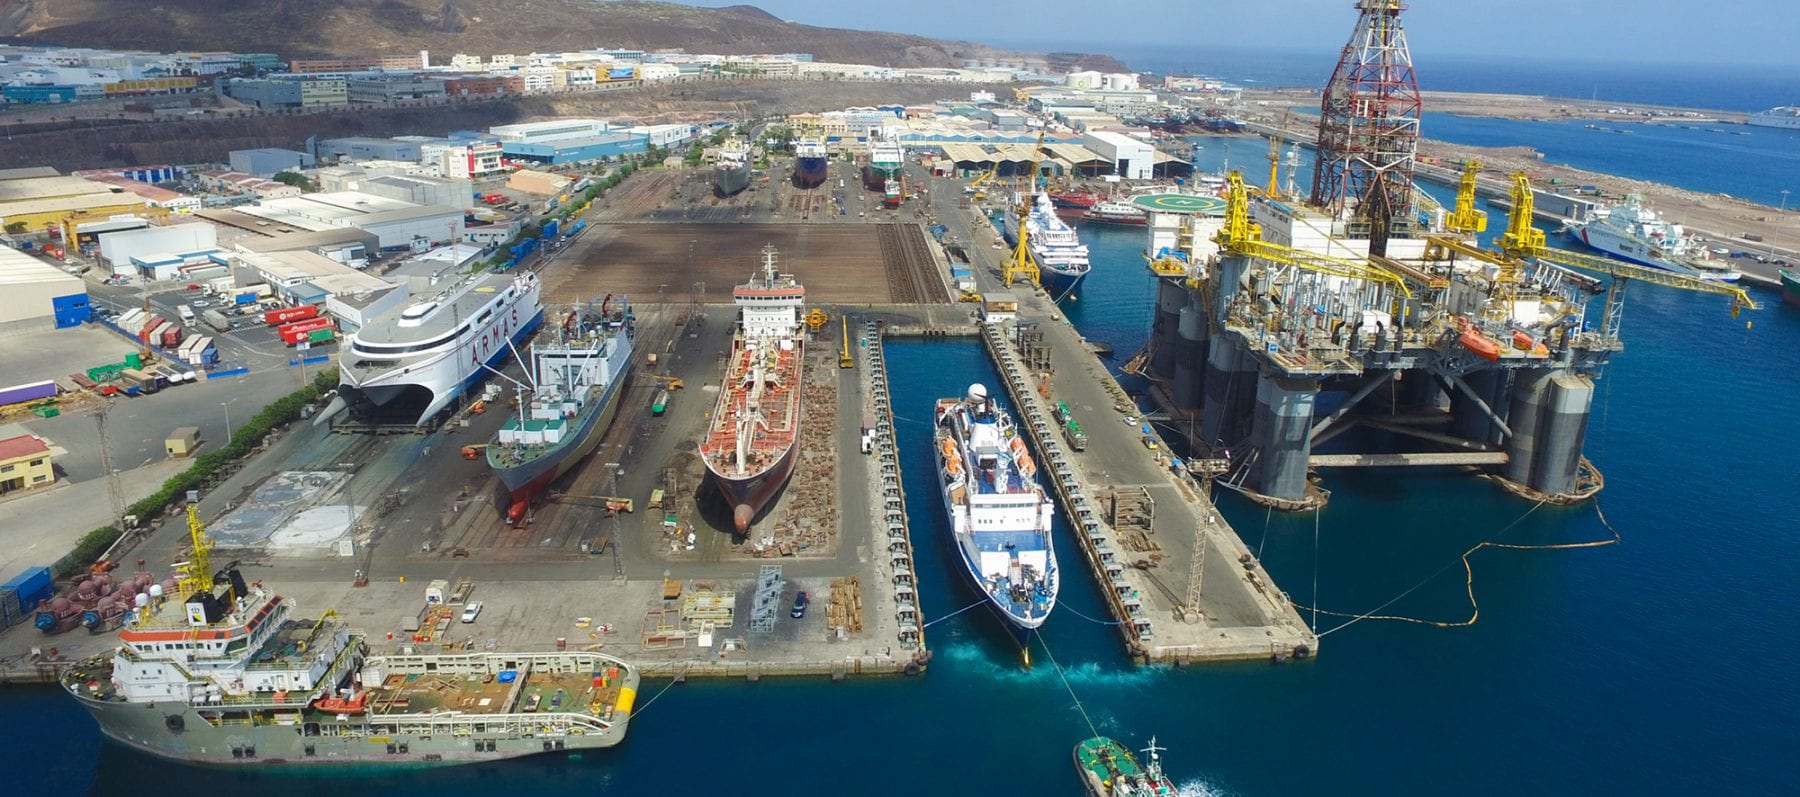 Astican Shipyard, Canary Islands